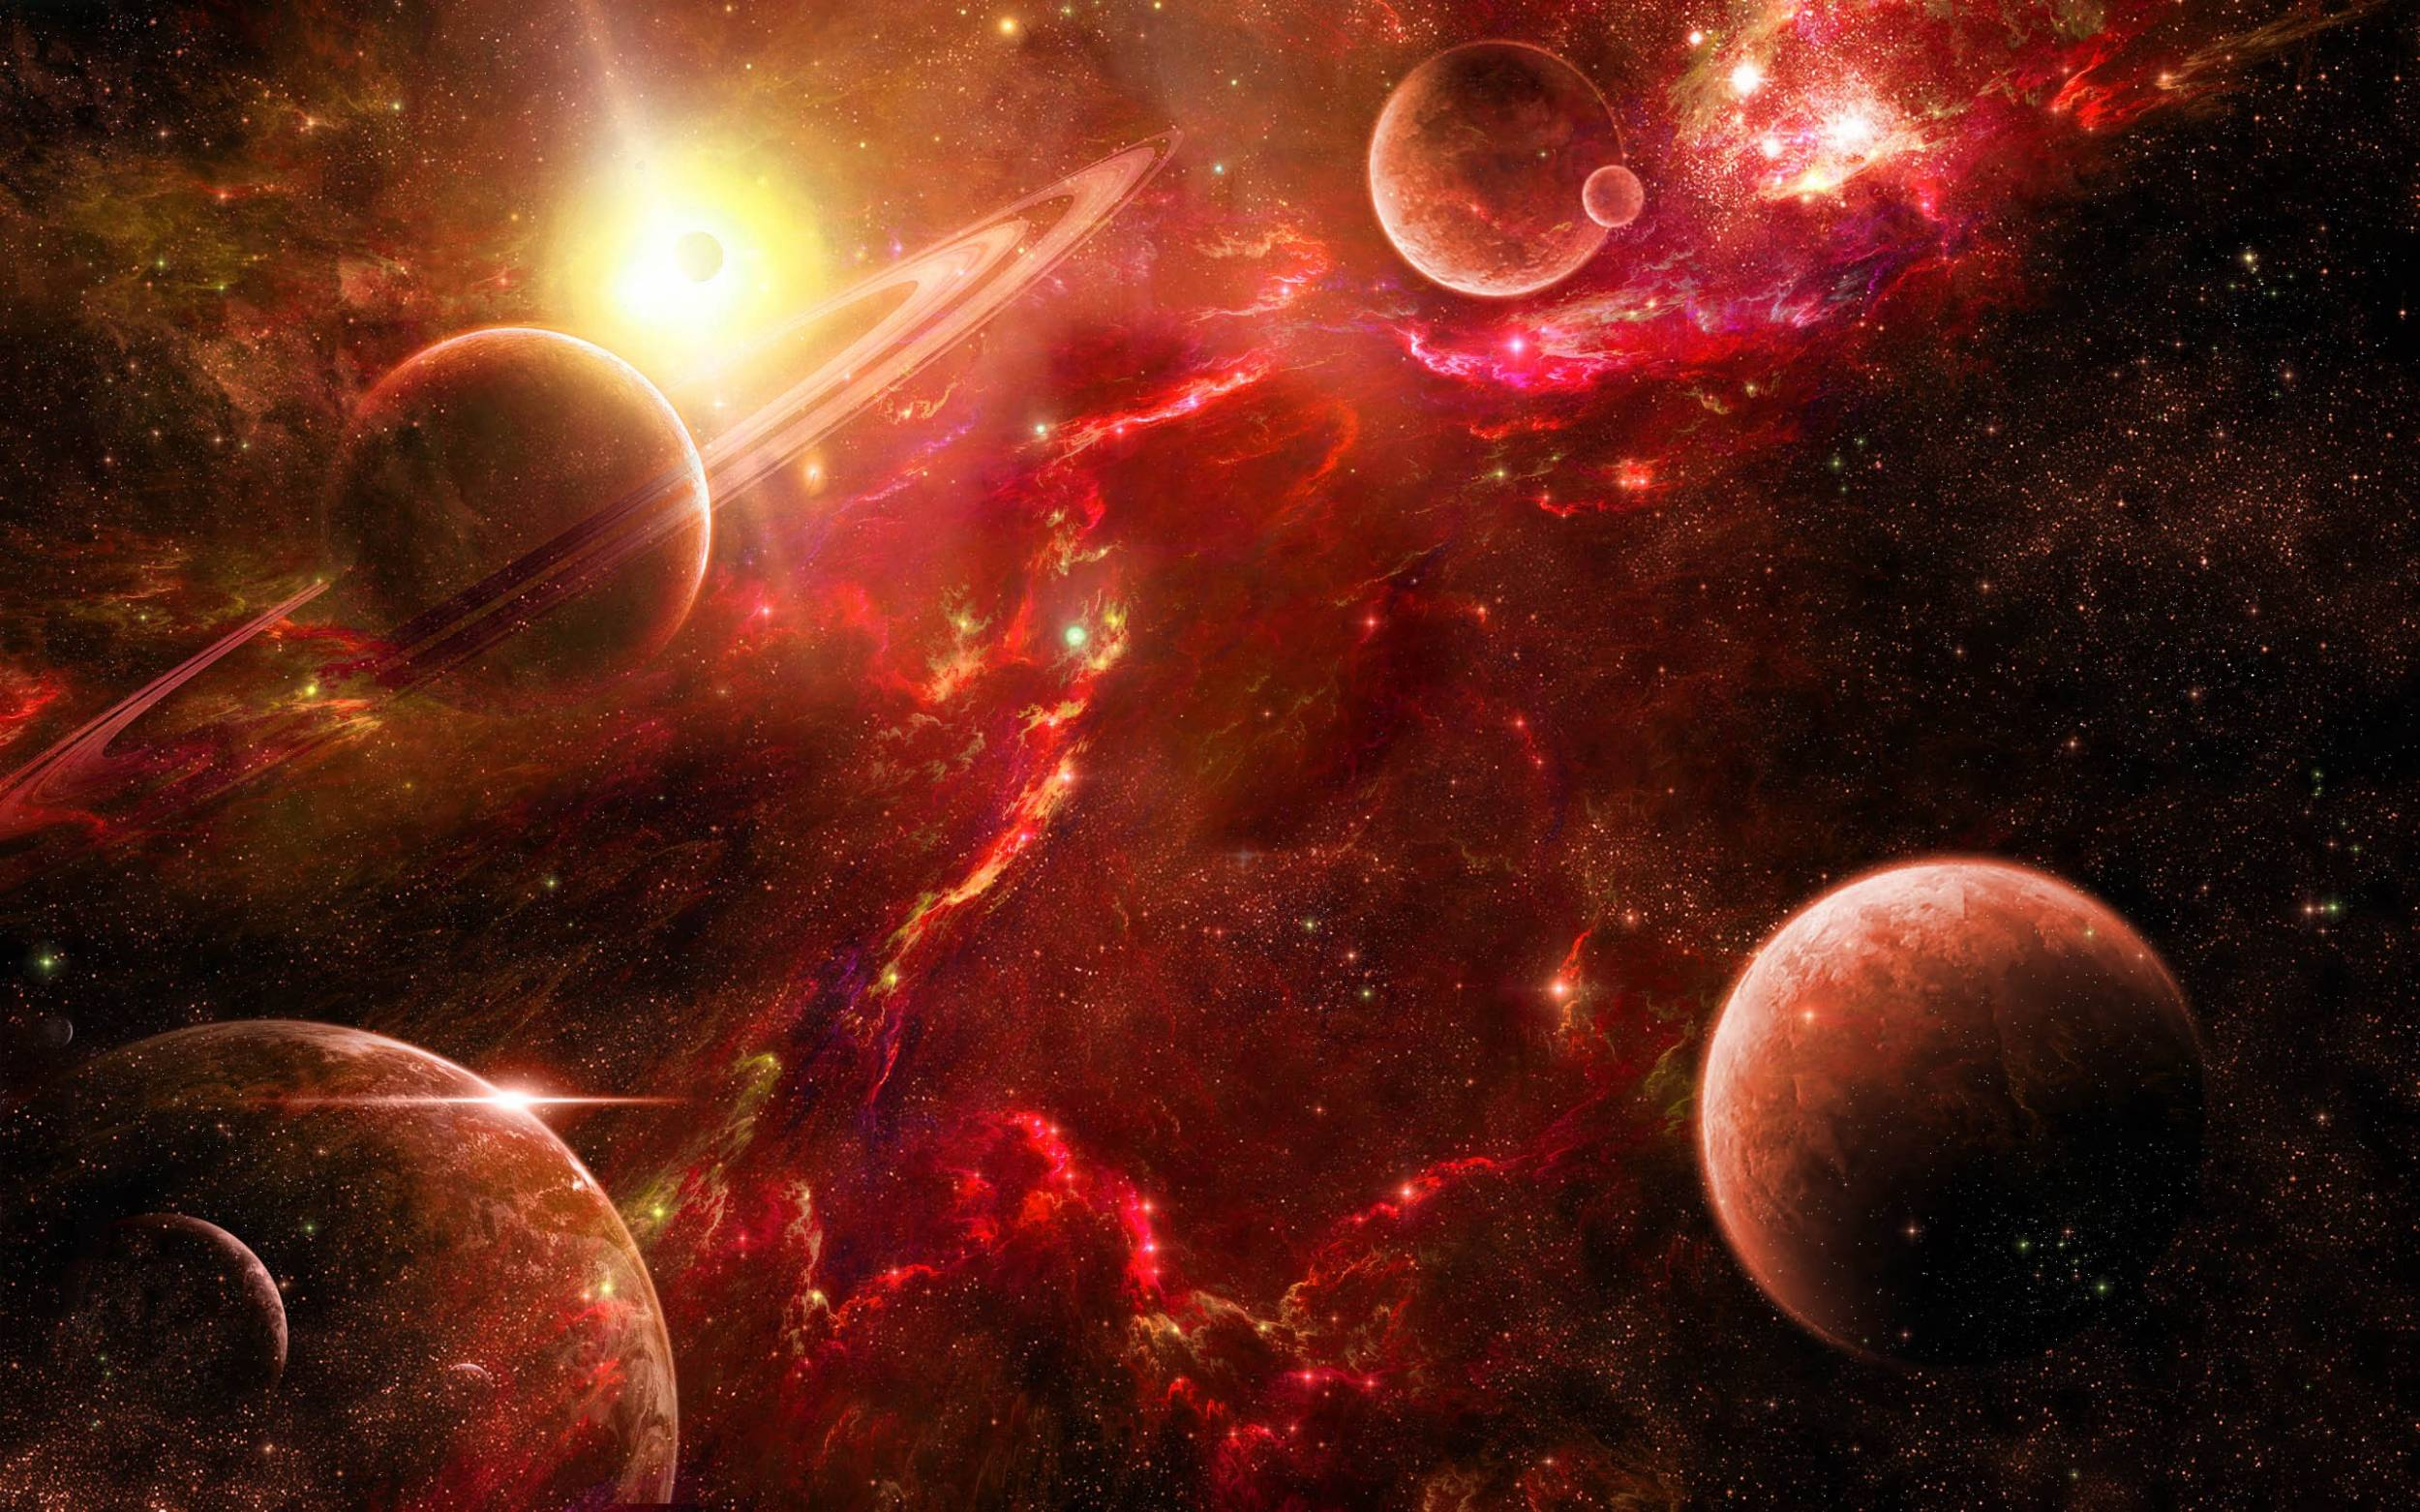 Backgrounds Of Outer Space download on the 2500x1562